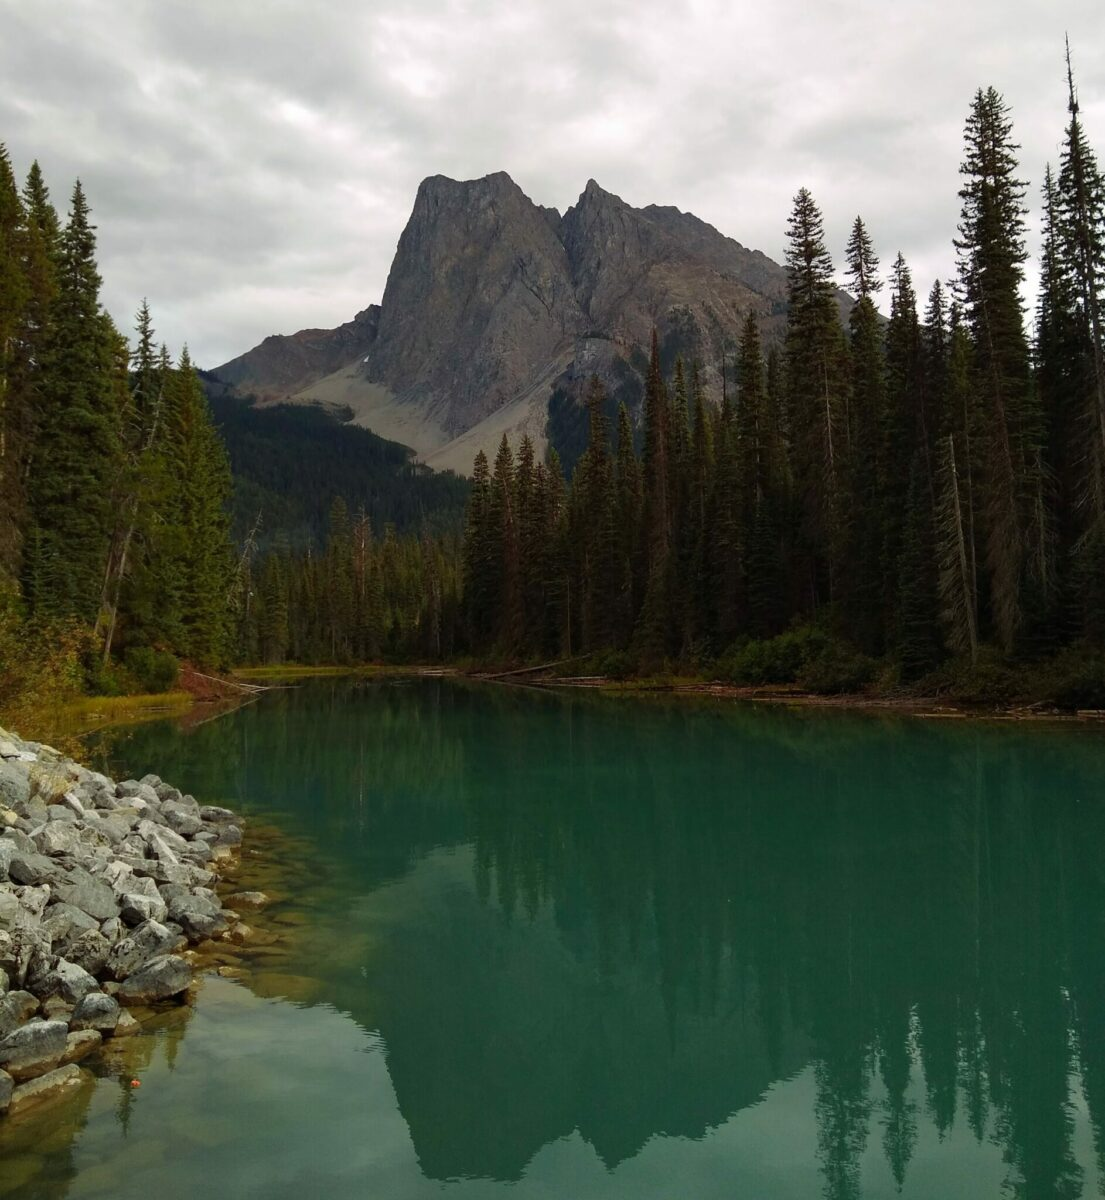 The edge of a very green lake surrounded by forest with a high mountain in the distance